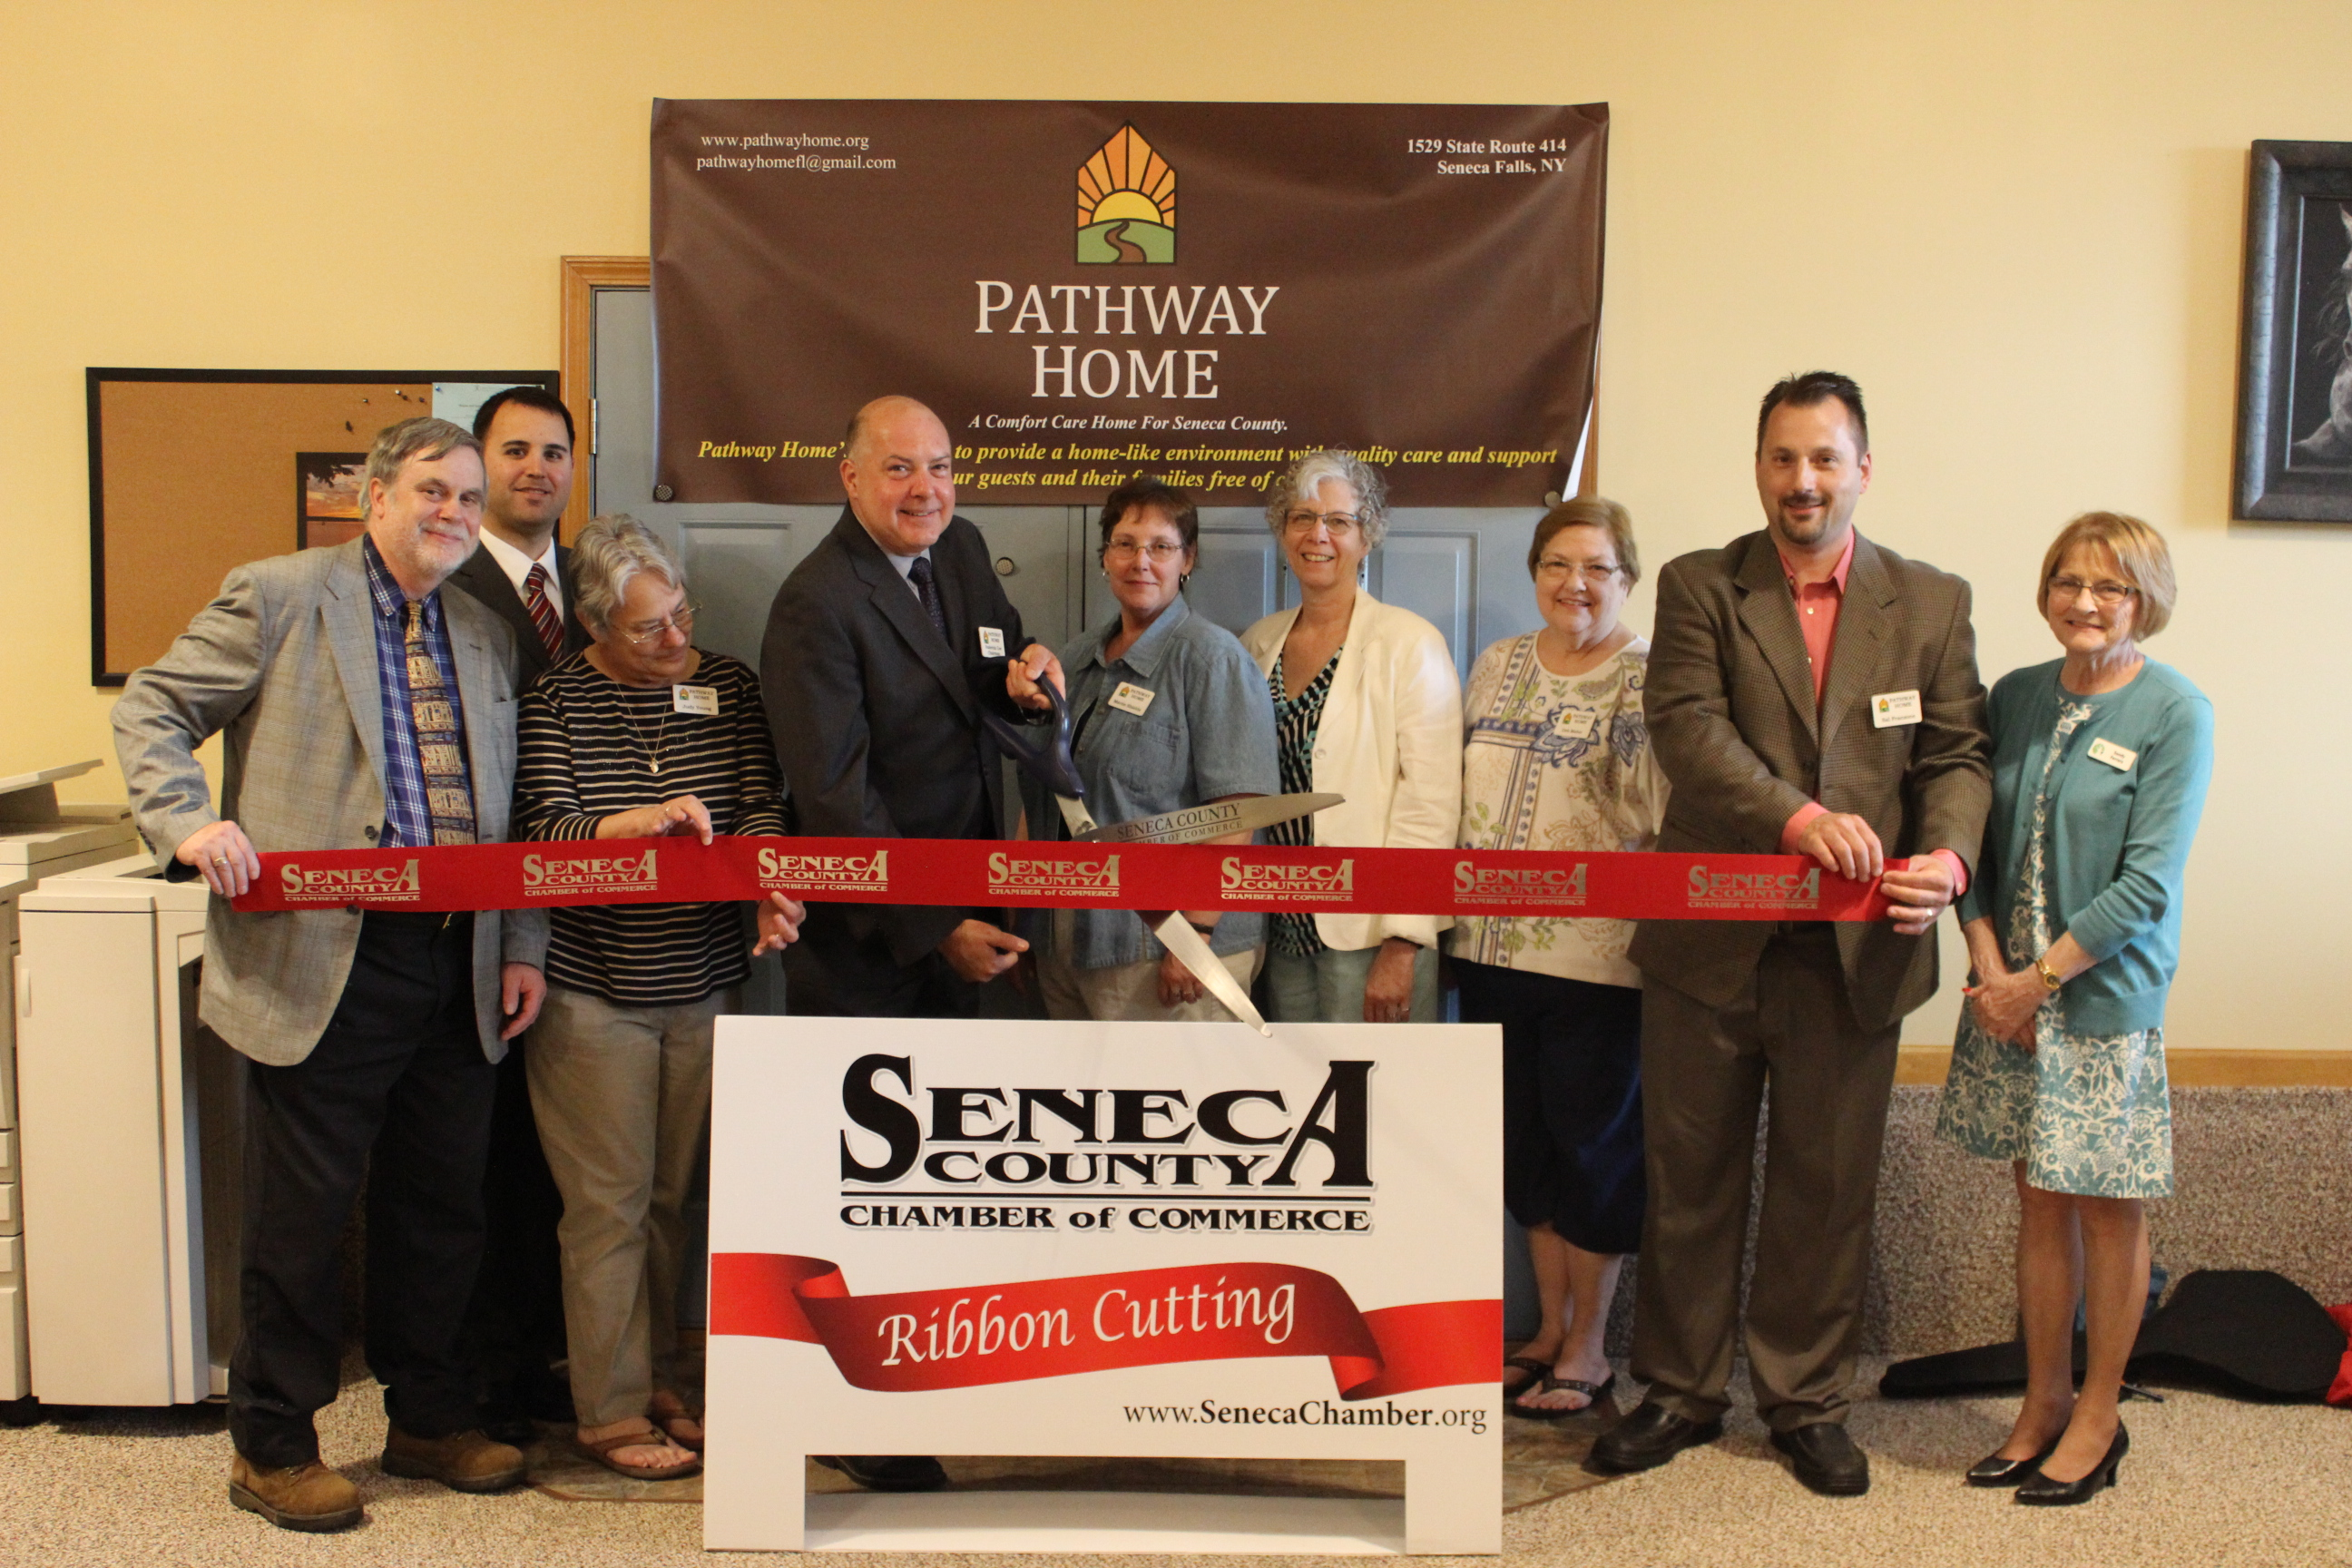 Pathway Home hosts ribbon cutting (photo)